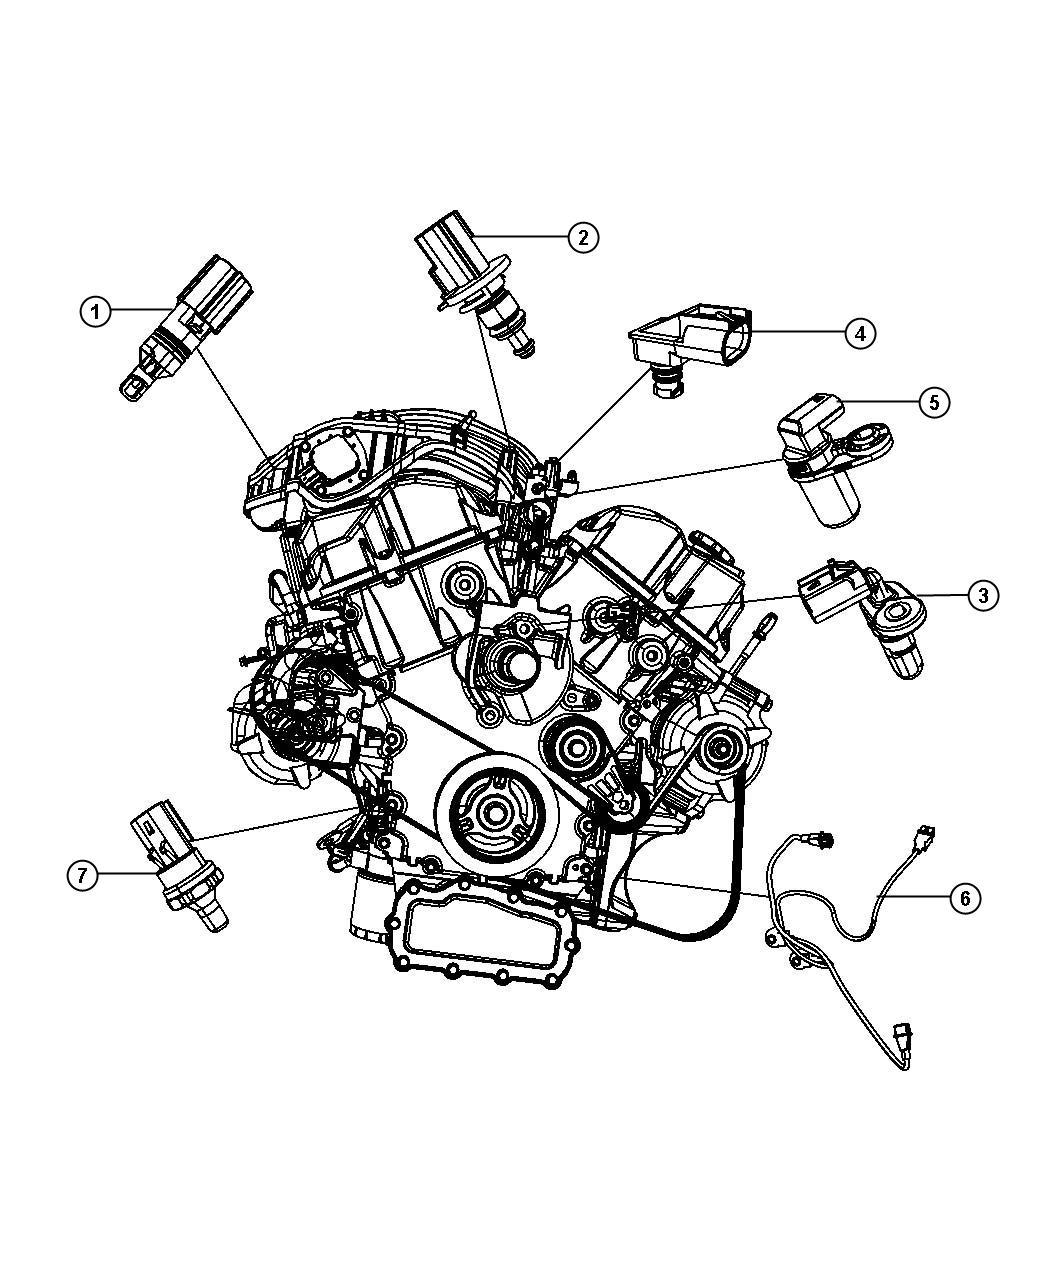 2009 Chrysler Sebring Sensor  Crankshaft Position  Engine